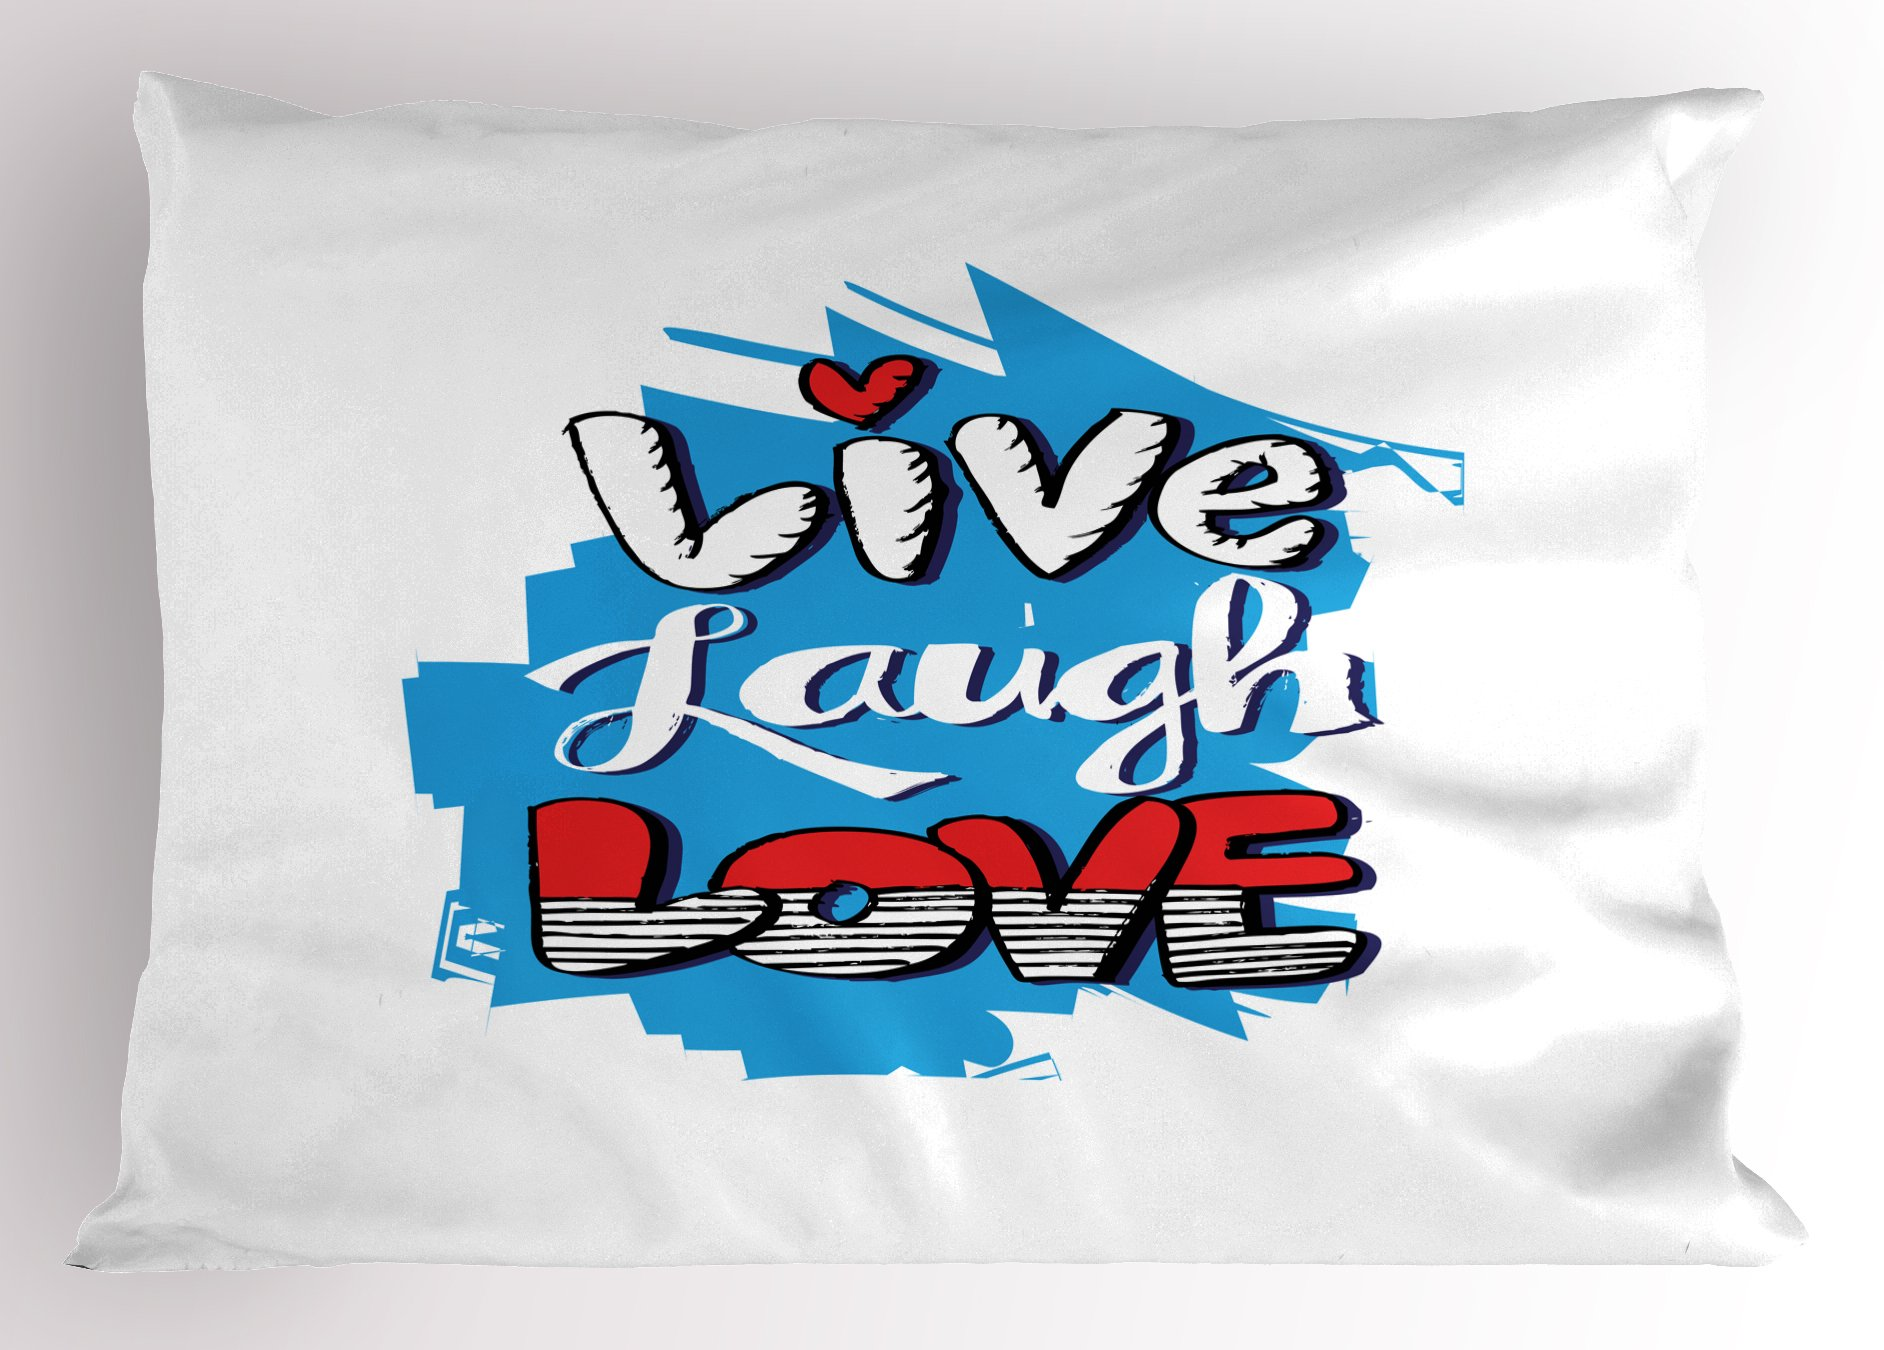 Ambesonne Live Laugh Love Pillow Sham, Abstract Grunge Graffiti Happiness Invoking Message Wall Art Design, Decorative Standard Queen Size Printed Pillowcase, 30 X 20 inches, Blue Red Black